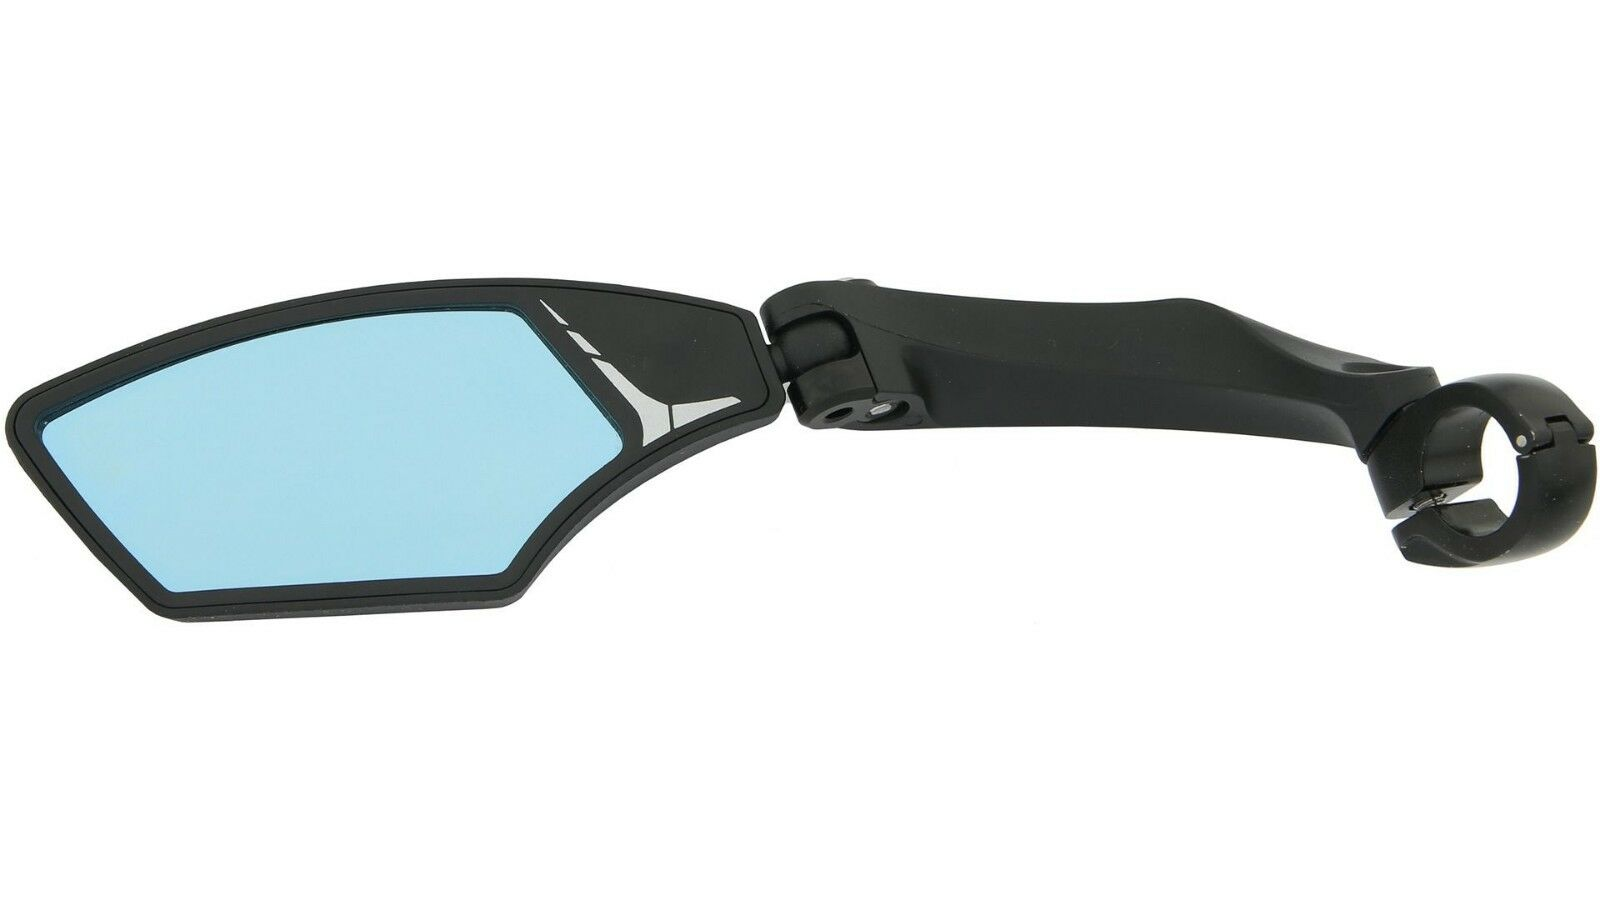 Bike and E-Bike Rear View Mirror   E-View Deluxe   Adjustable, Right Side